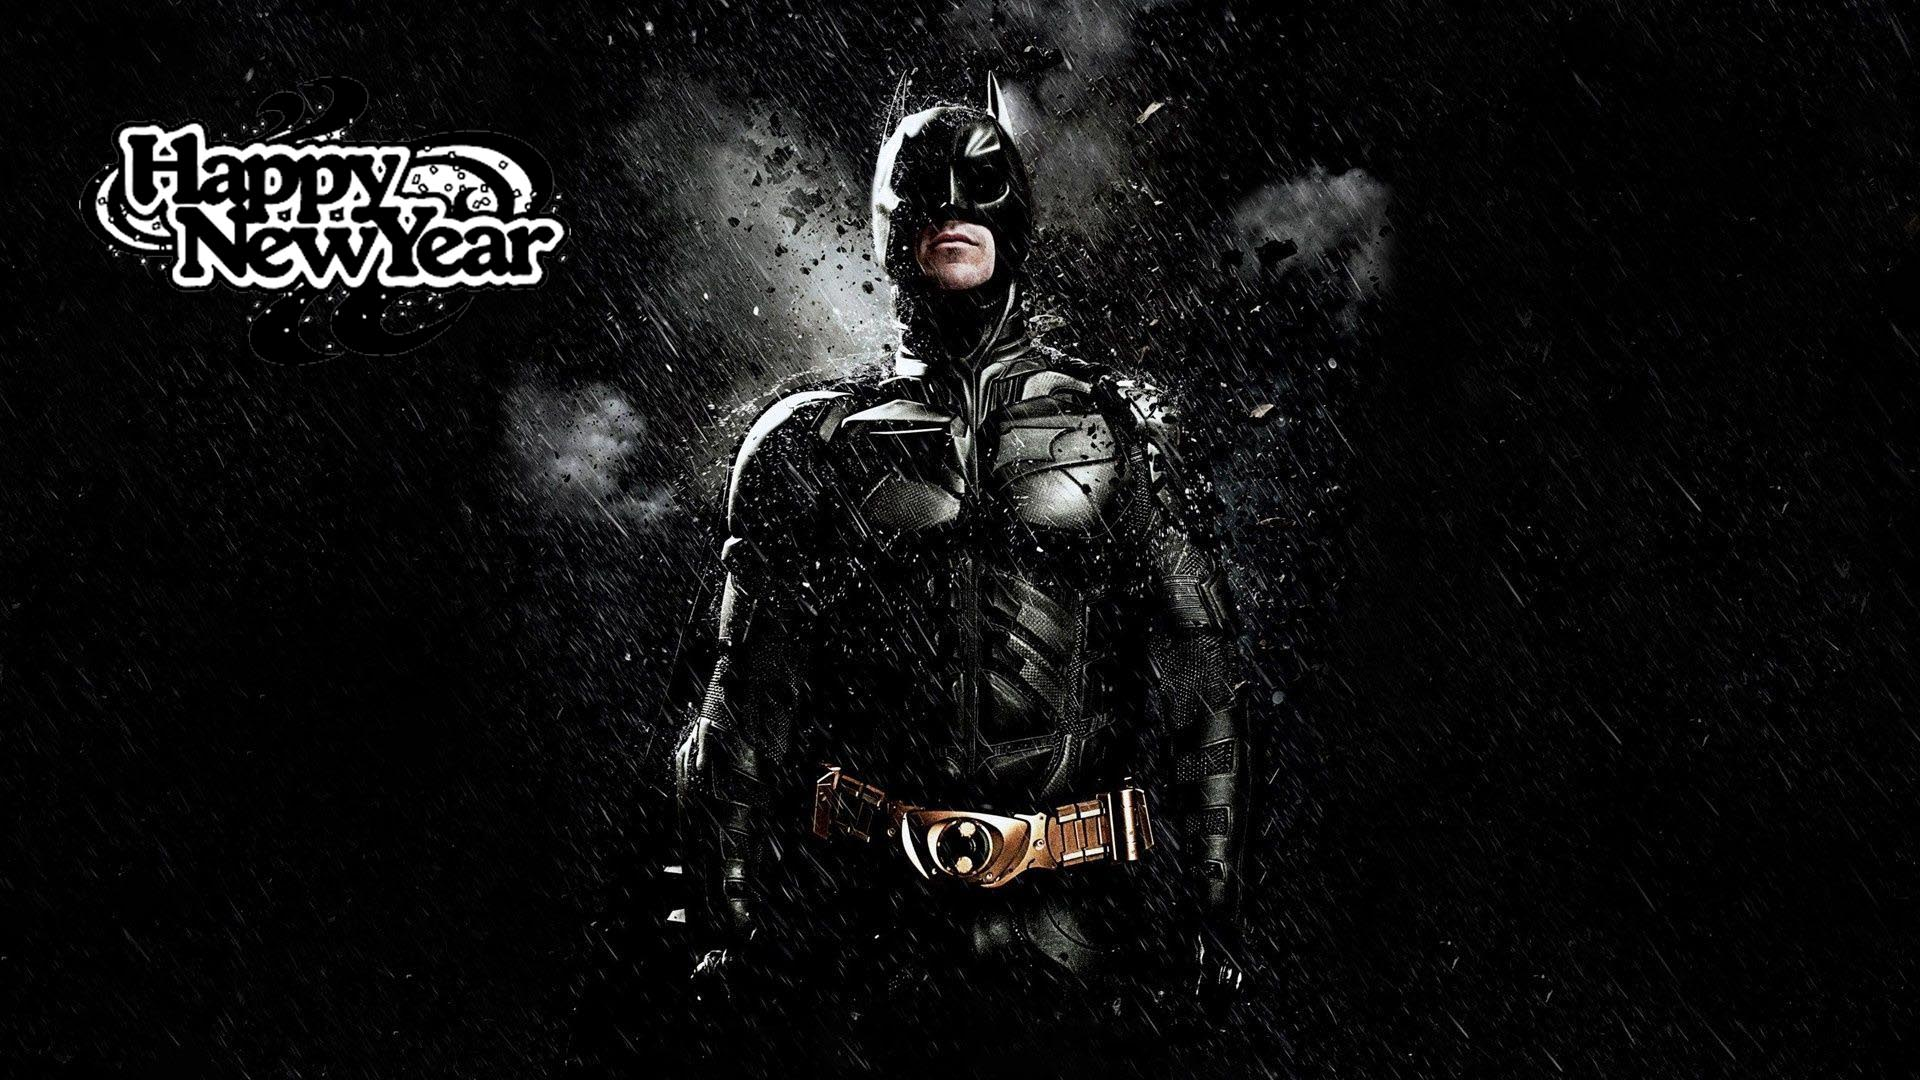 happy new year wishes super hero batman kids hd wallpaper